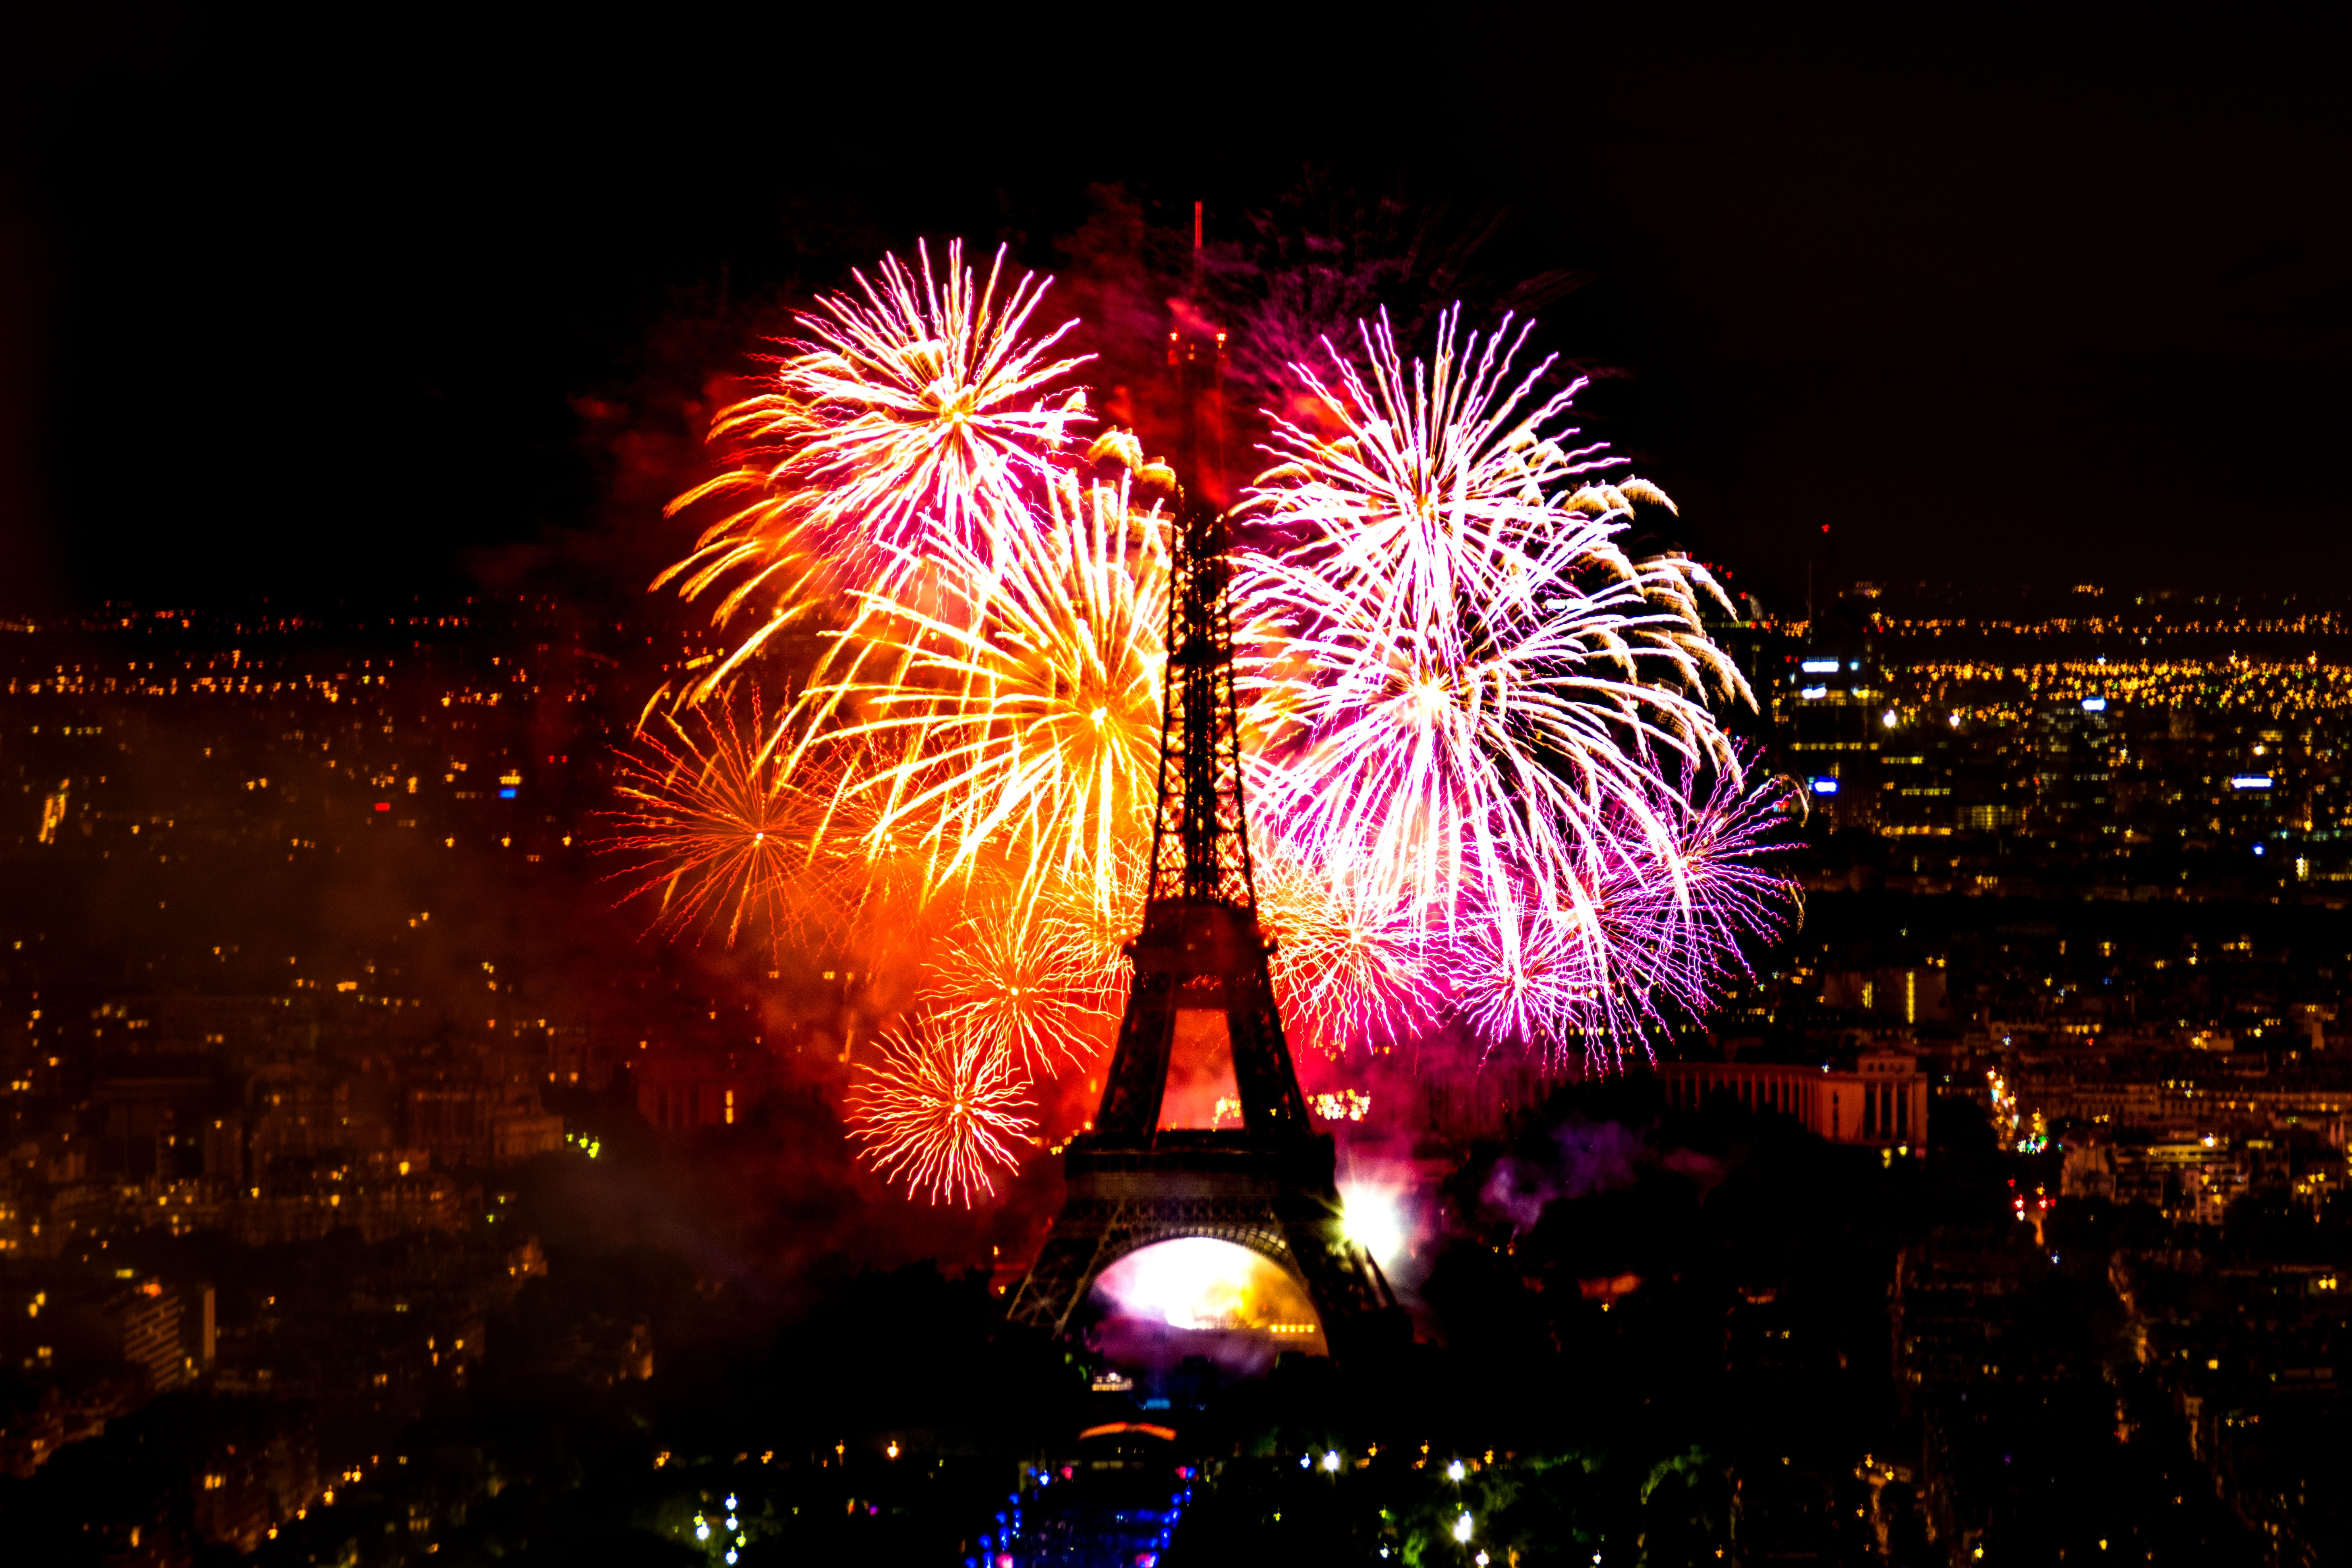 A fireworks display behind the Eiffel Tower in France.